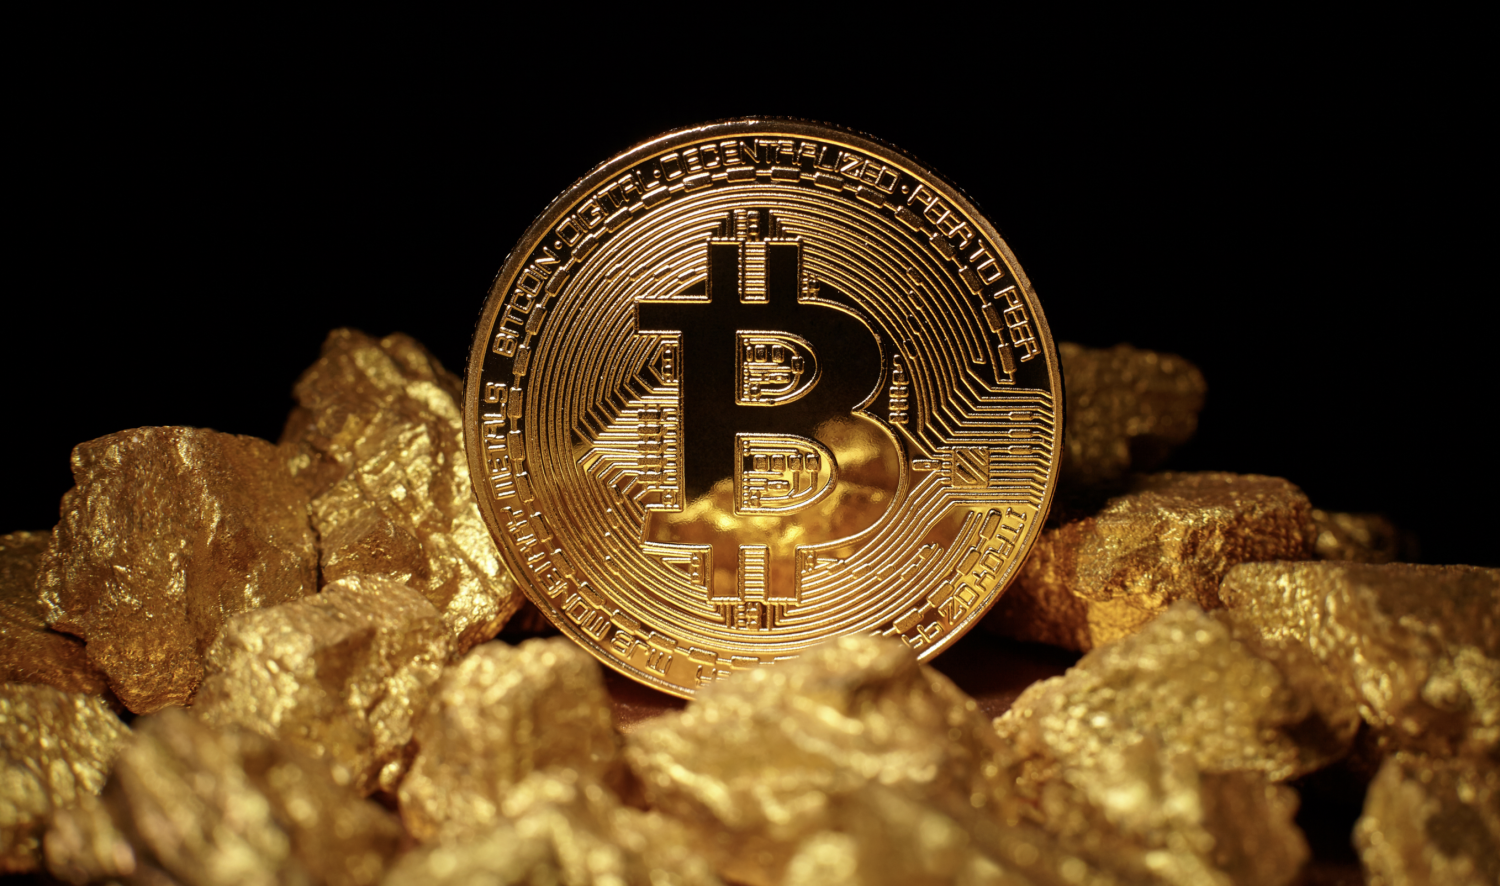 Bitcoin Gold - What to Know About the Blockchain's Next Split